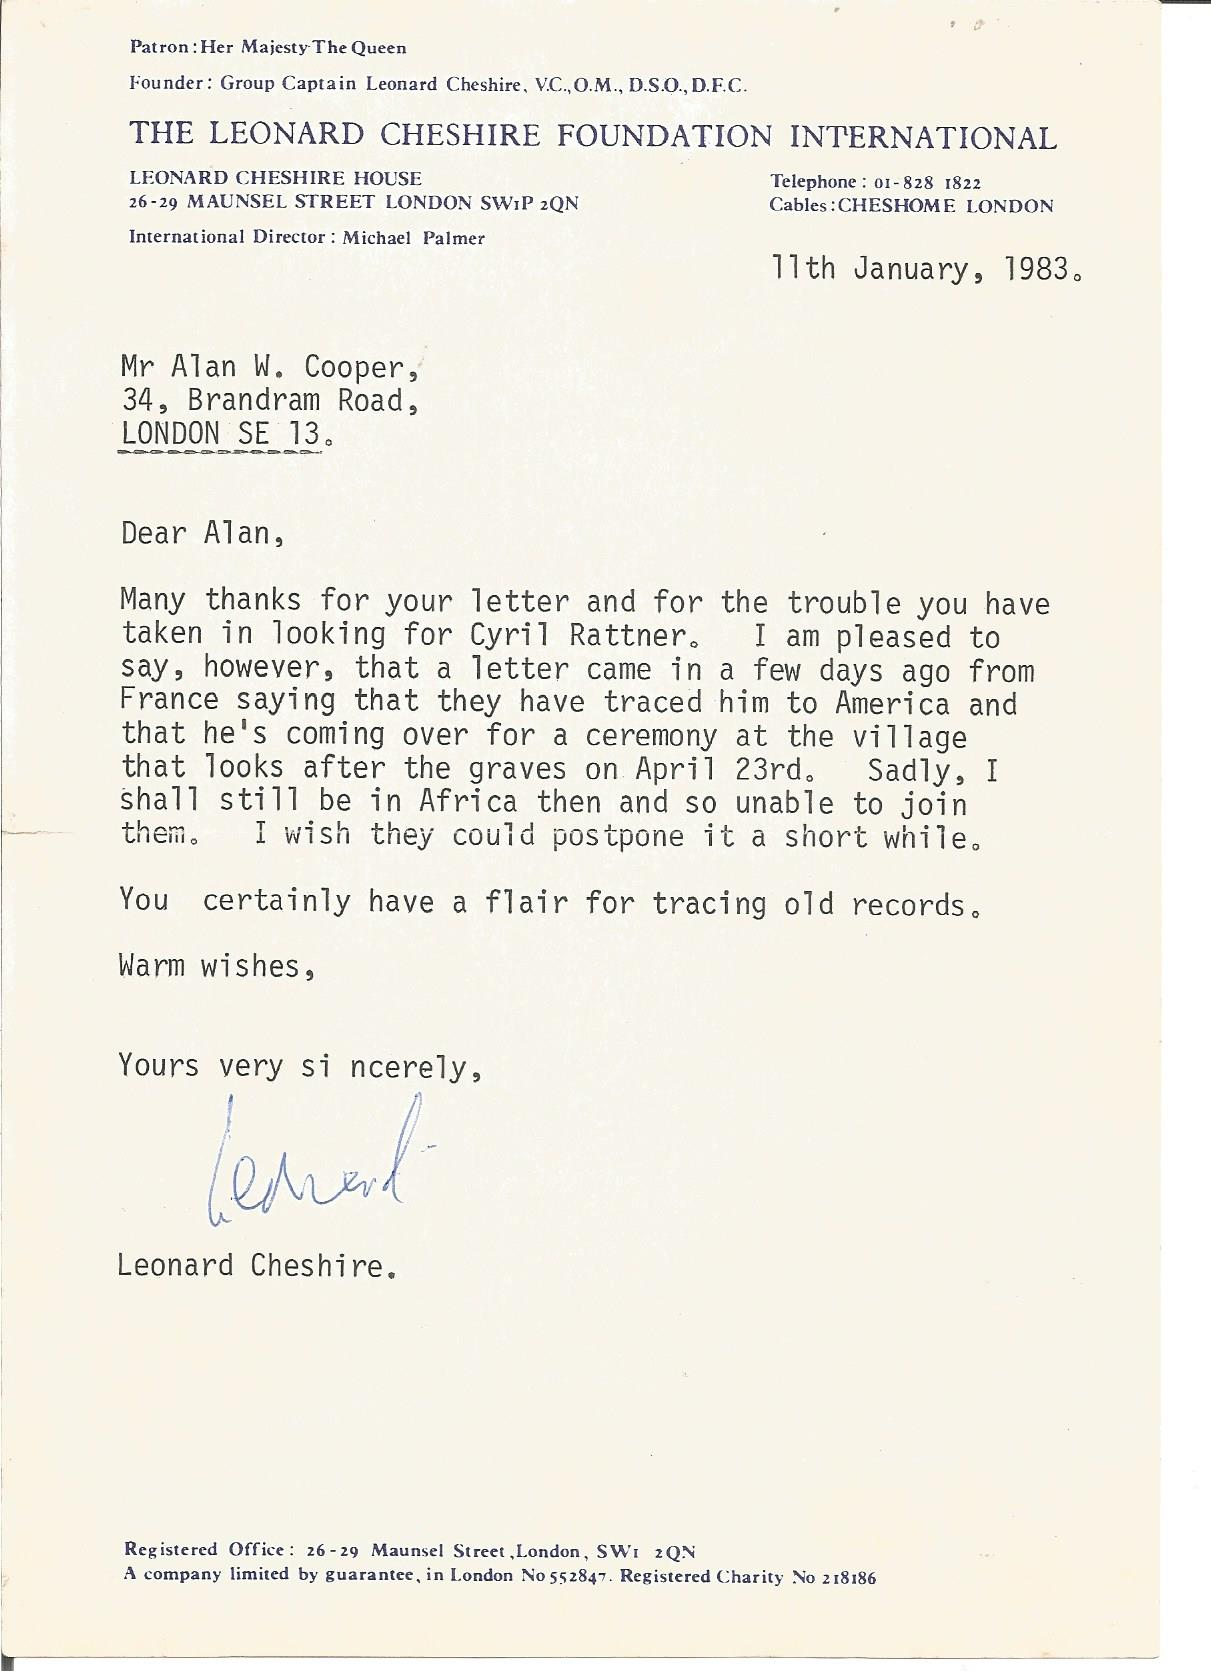 Lot 55 - Leonard Cheshire VC typed signed letter to WW2 author Alan Cooper regarding looking for Cyril Ratner